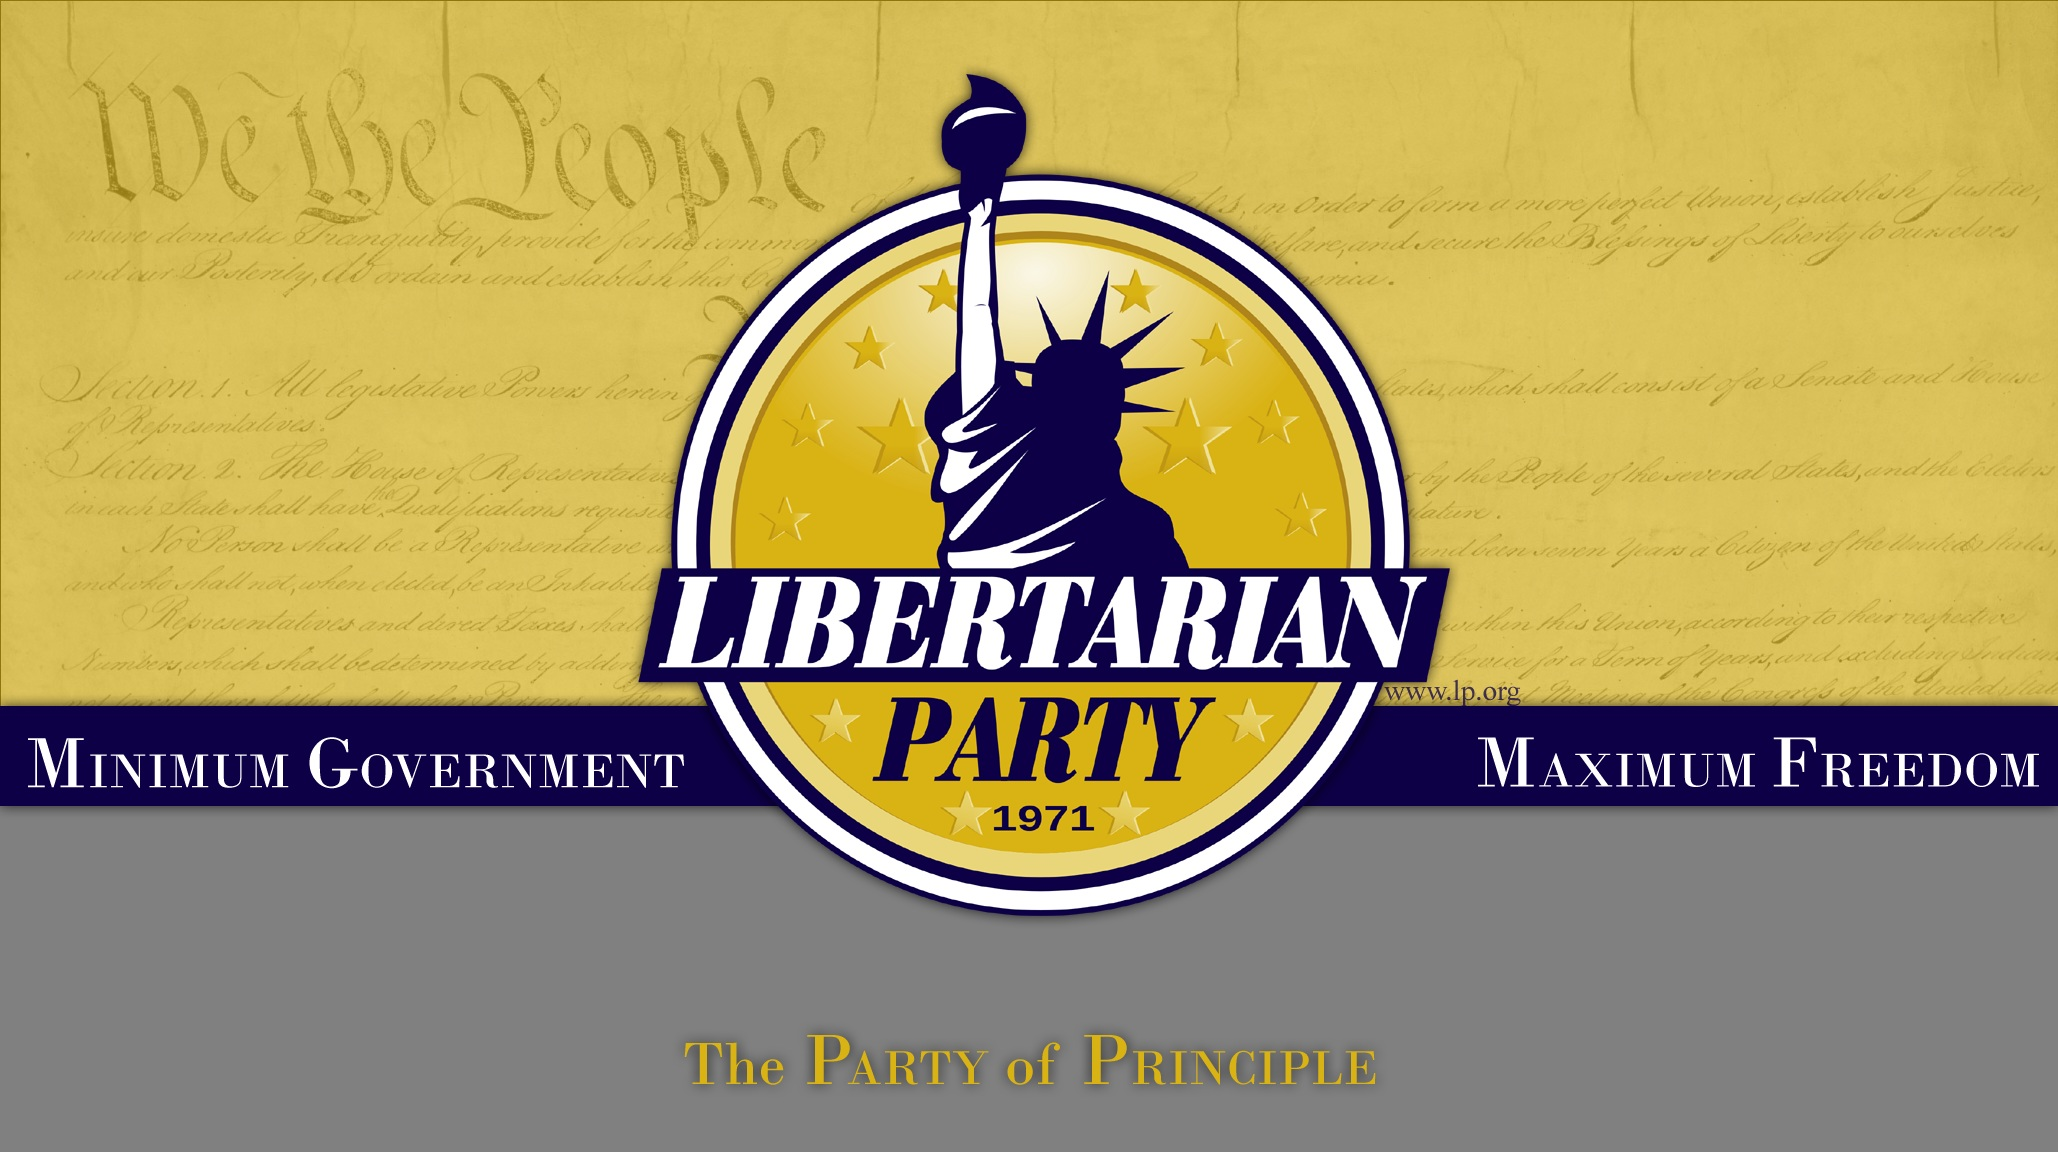 Presidential Candidate Switches to the Libertarian Party